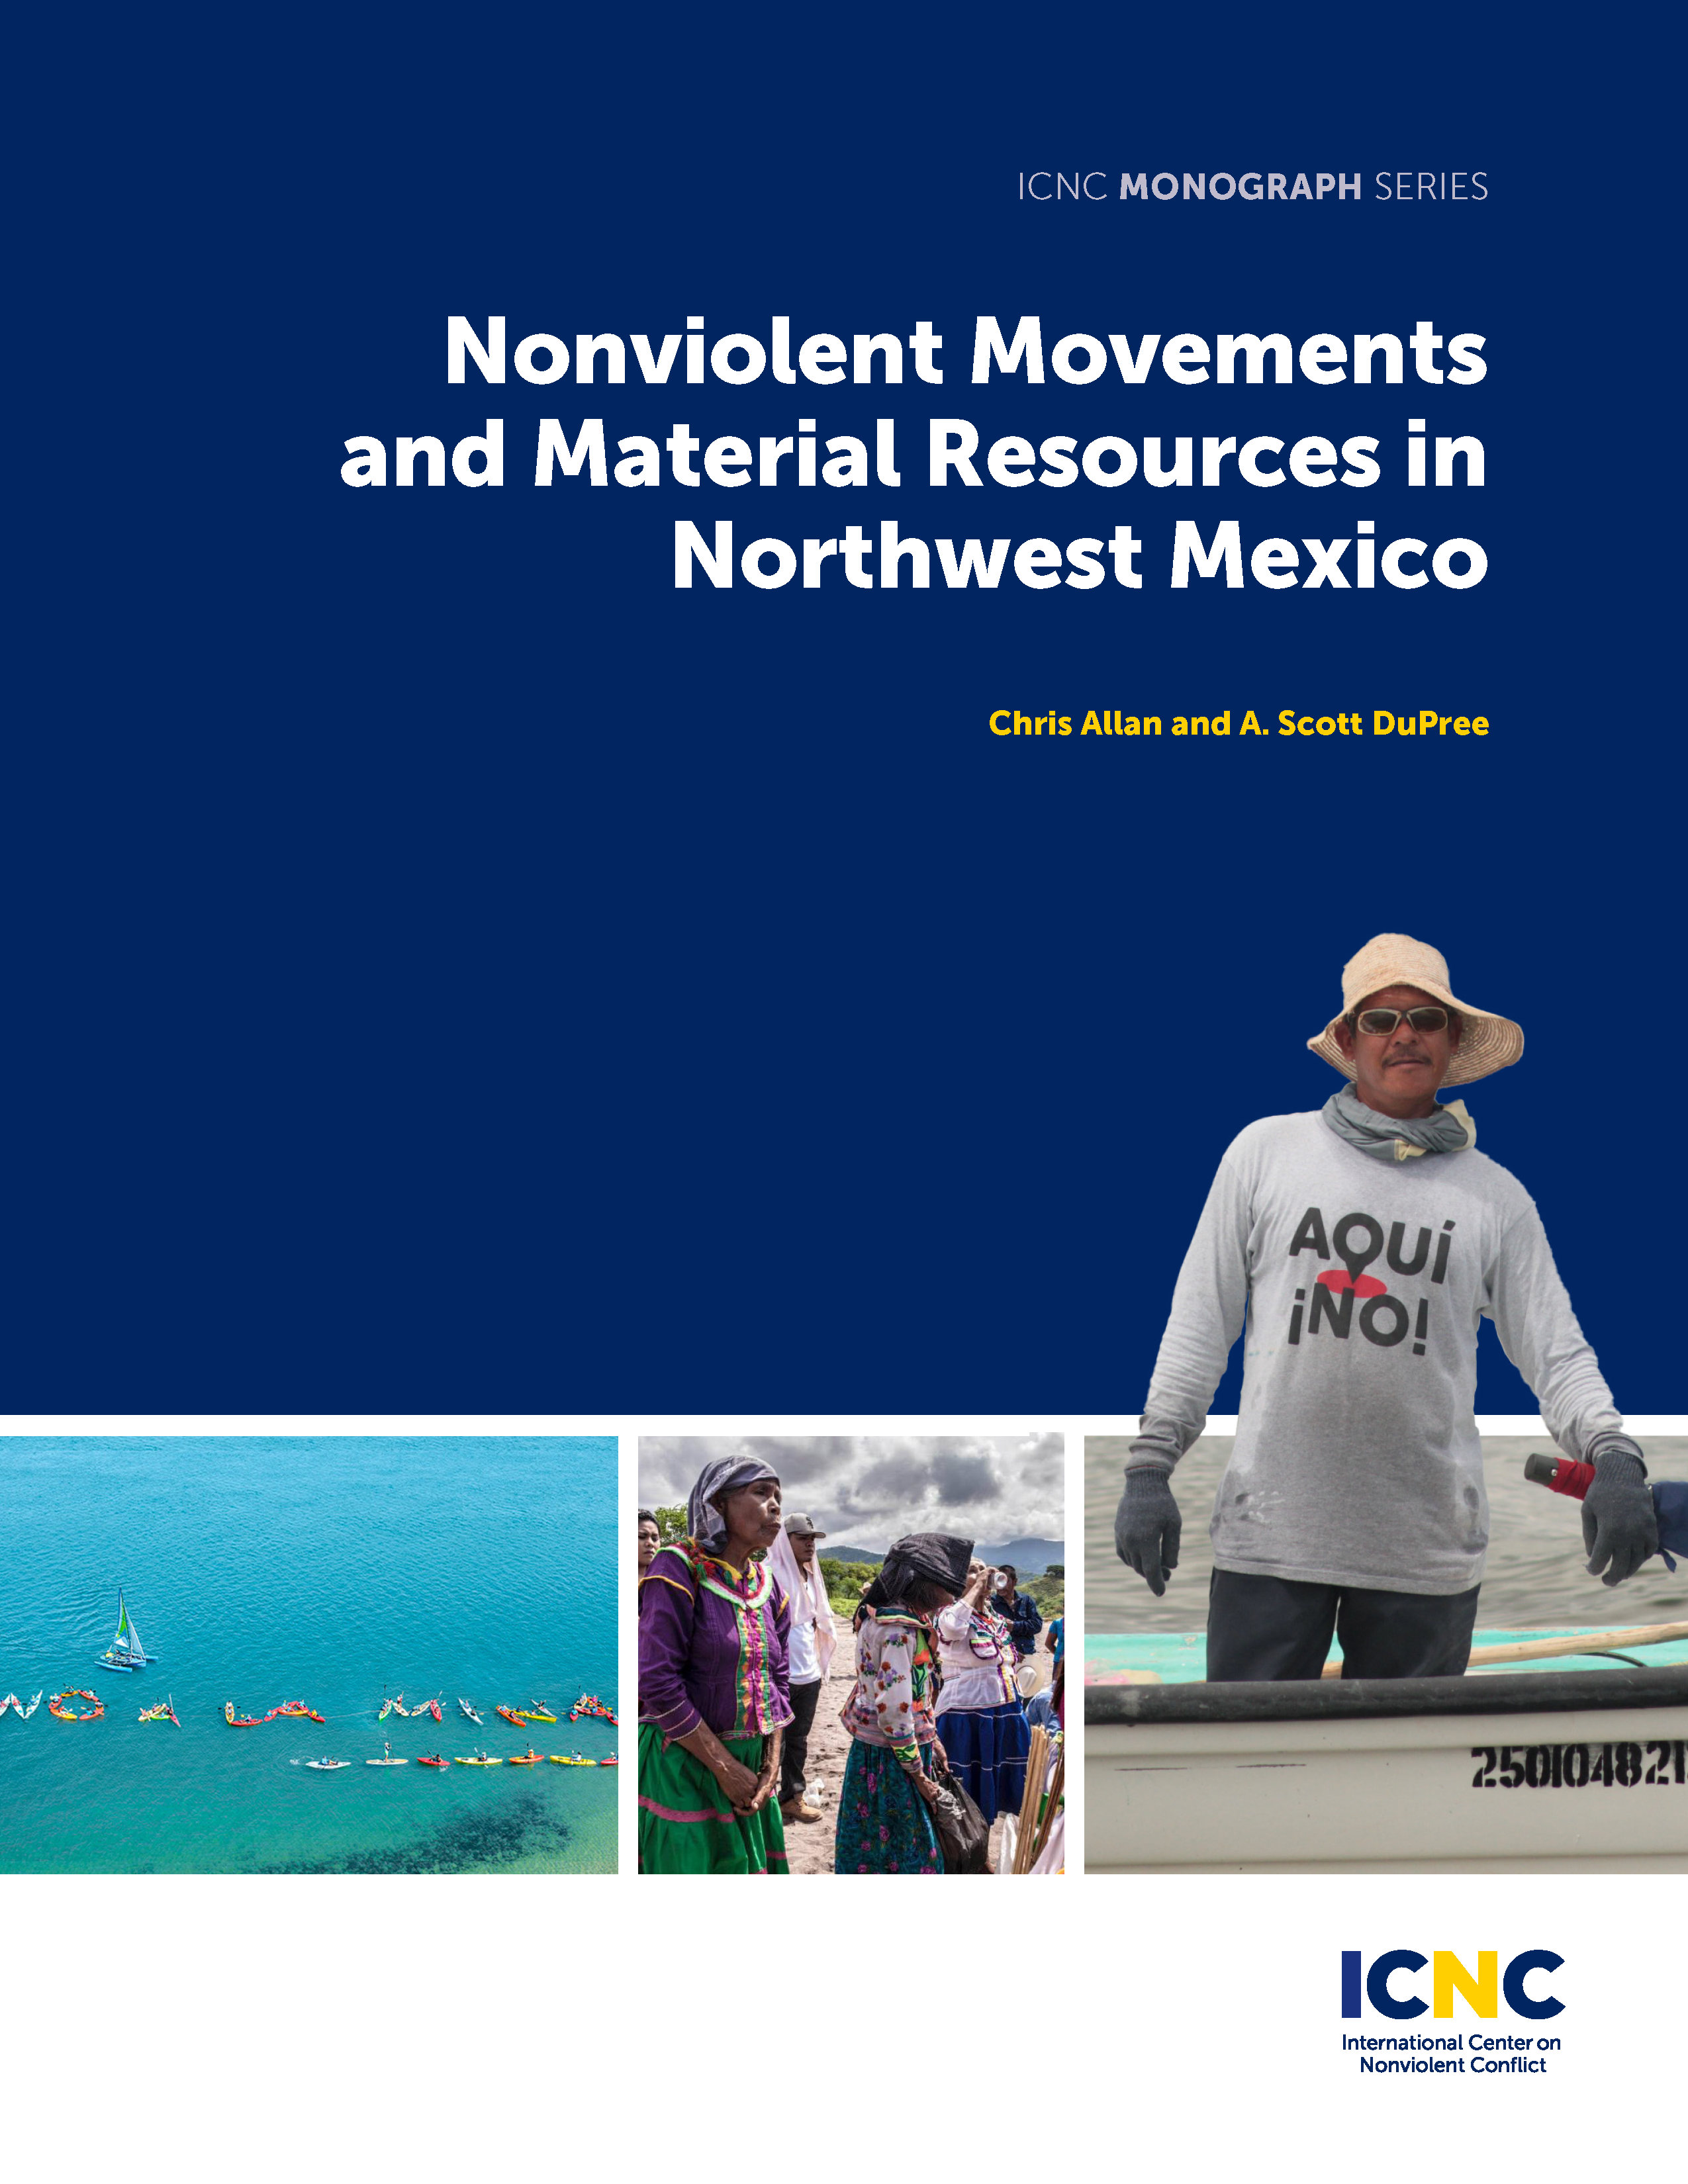 Nonviolent Movements and Material Resources in Northwest Mexico